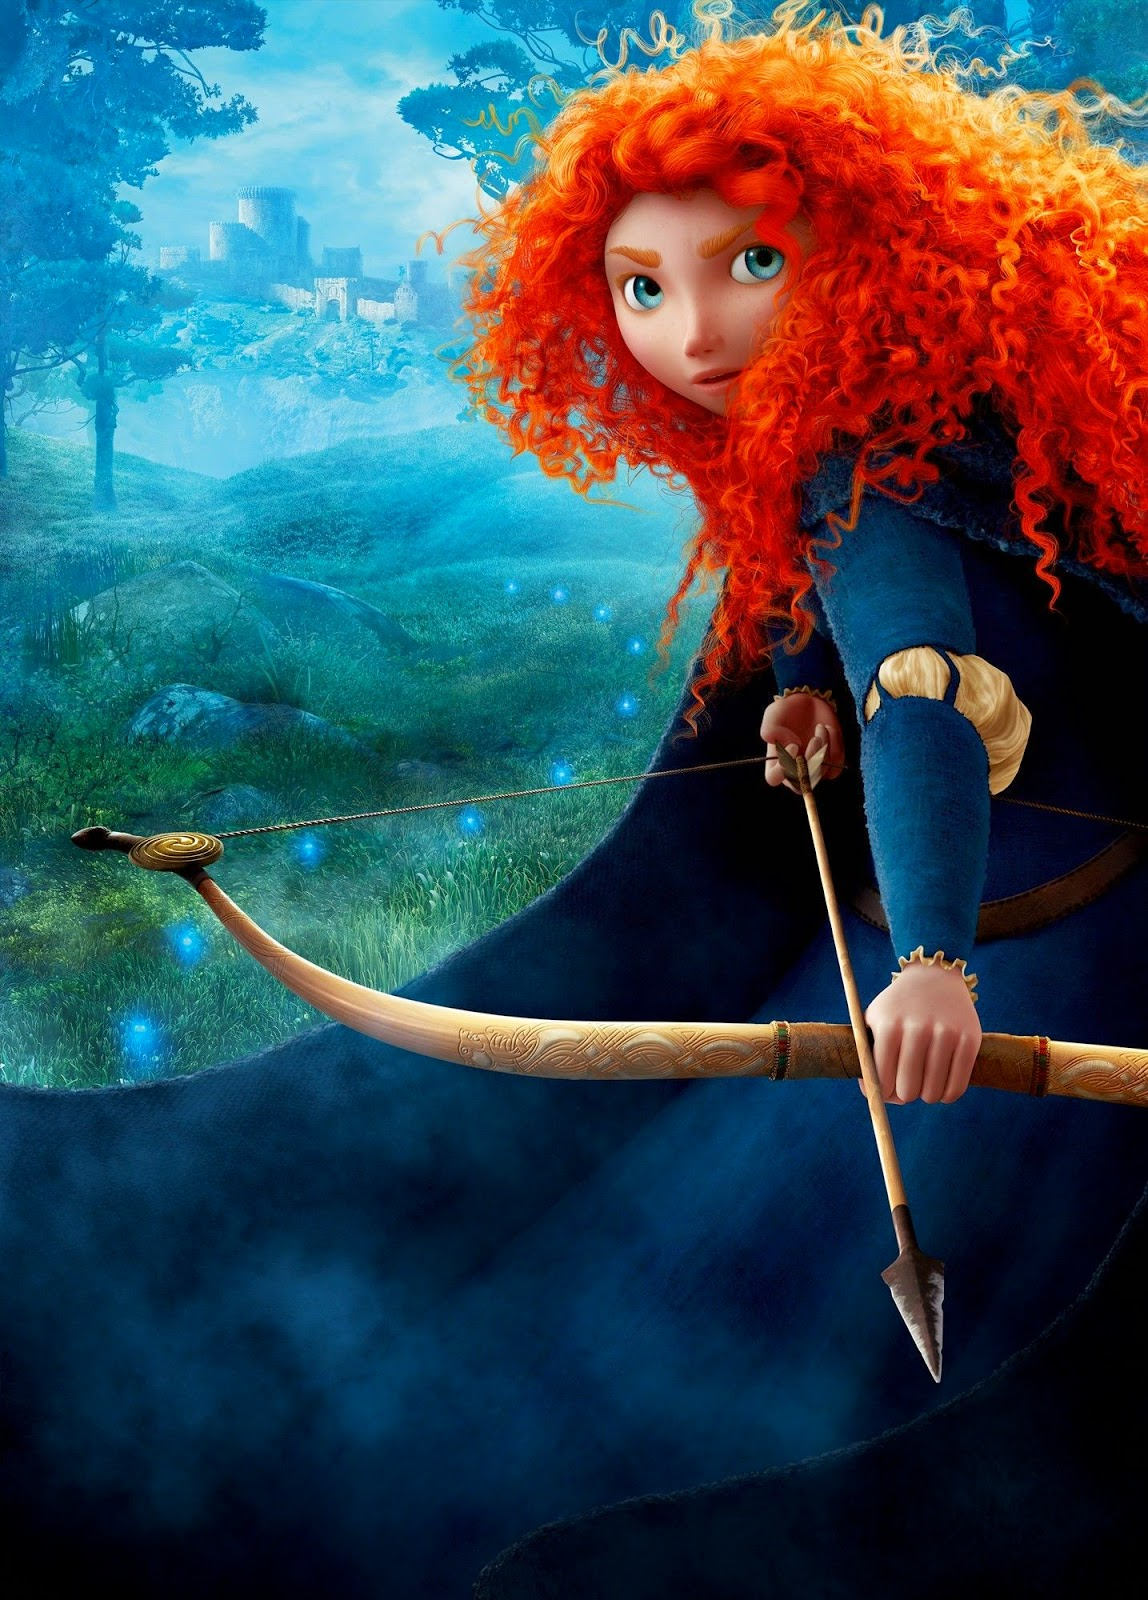 princess merida in brave wallpapers - Princess Merida in Brave free desktop backgrounds and